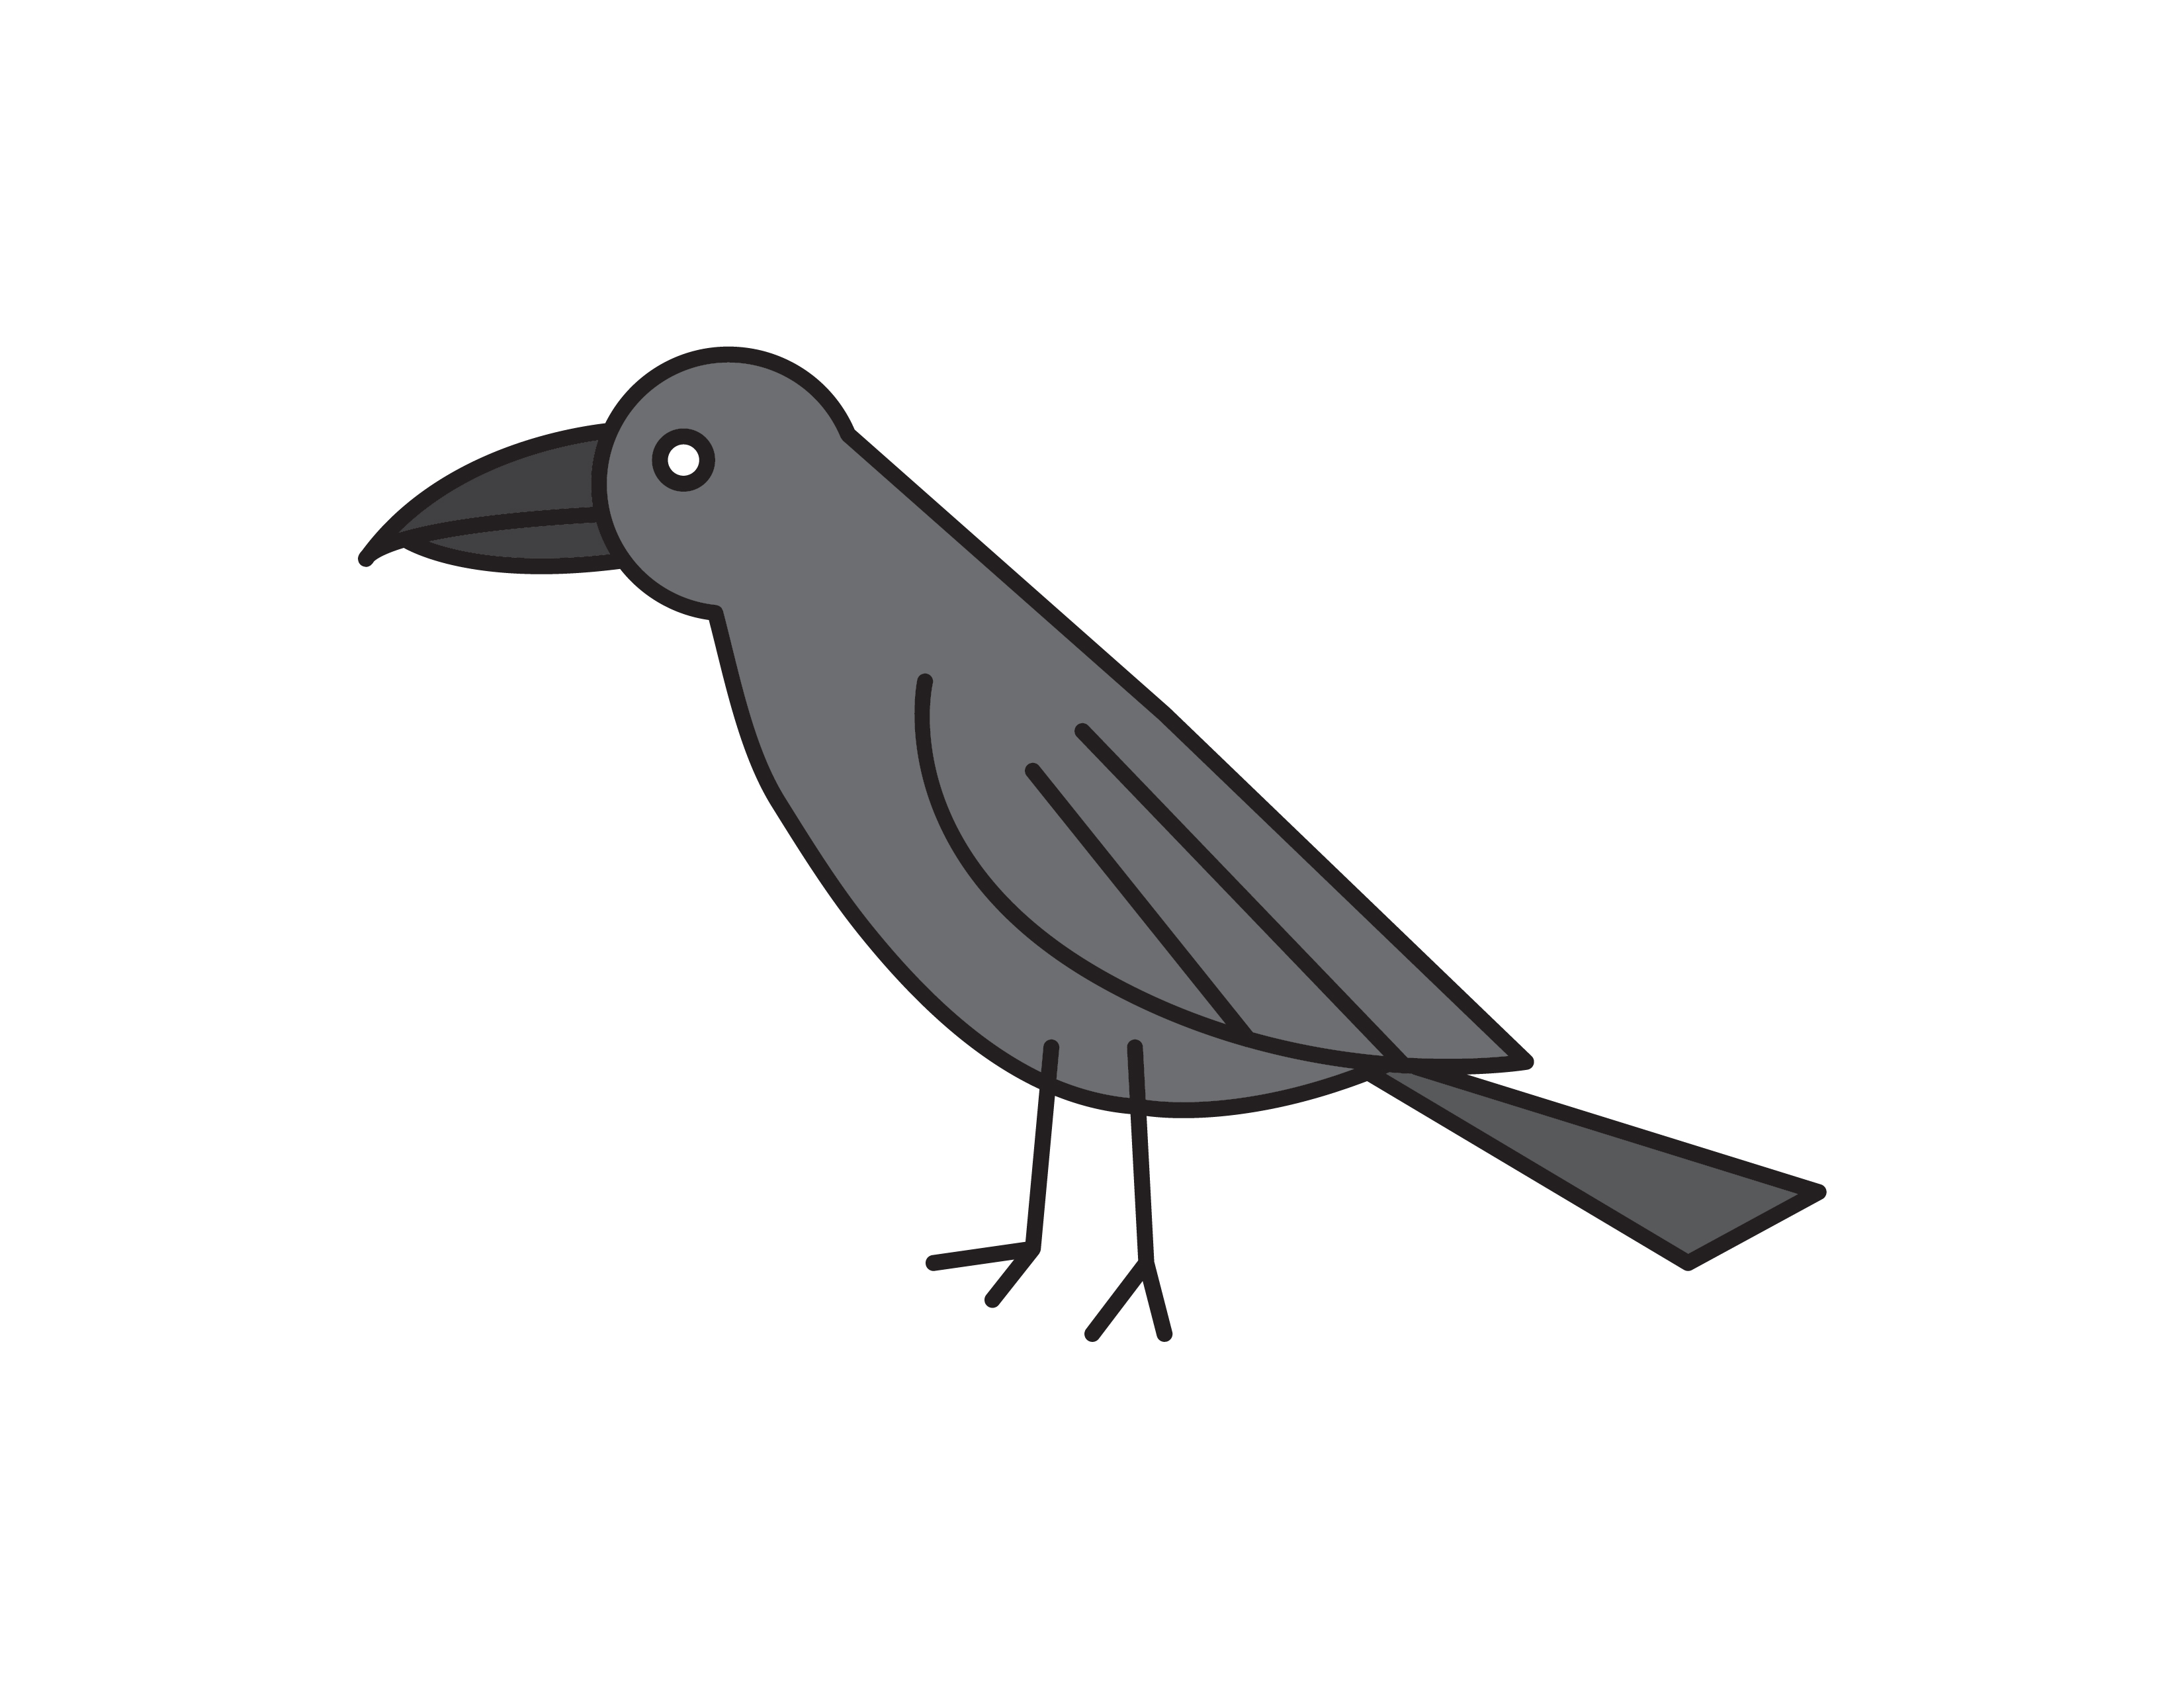 How To Draw RAVEN BLACK BIRD STEP By Step For Kids Easy Illustration Doodle Drawing GUIDE ANIMAL